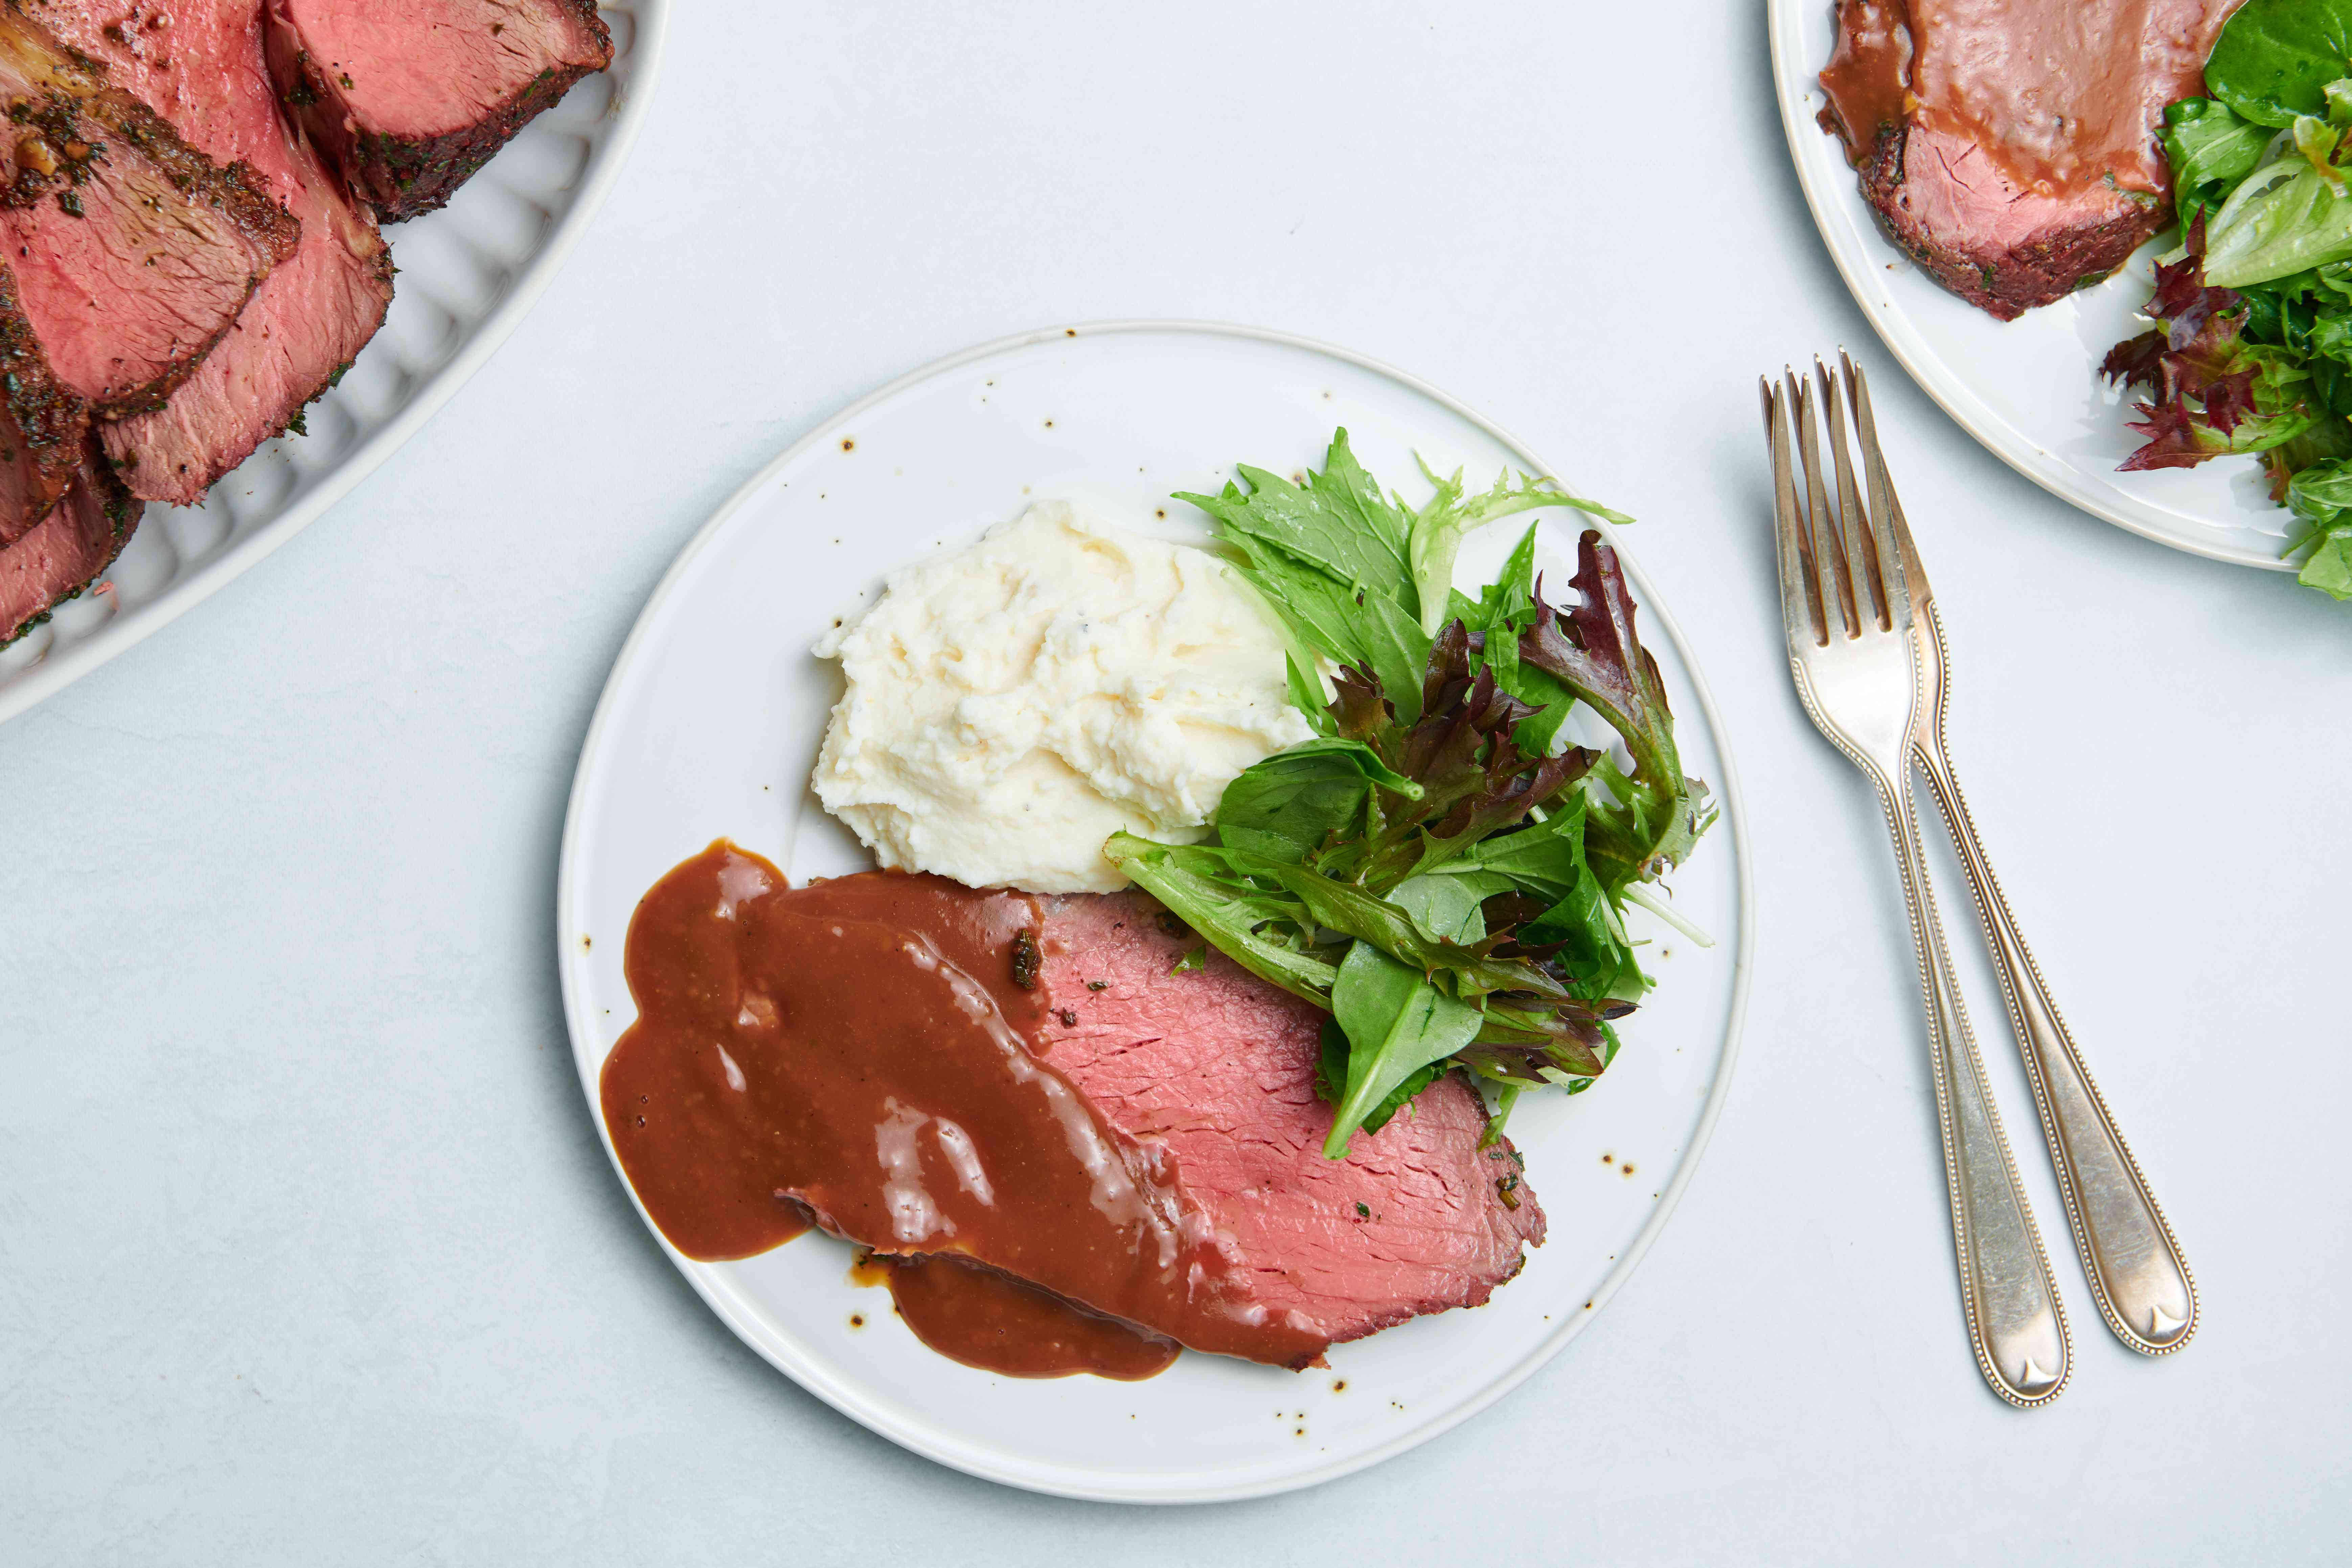 Pepper and Herb Crusted Sirloin Strip Roast, served mashed potatoes and salad